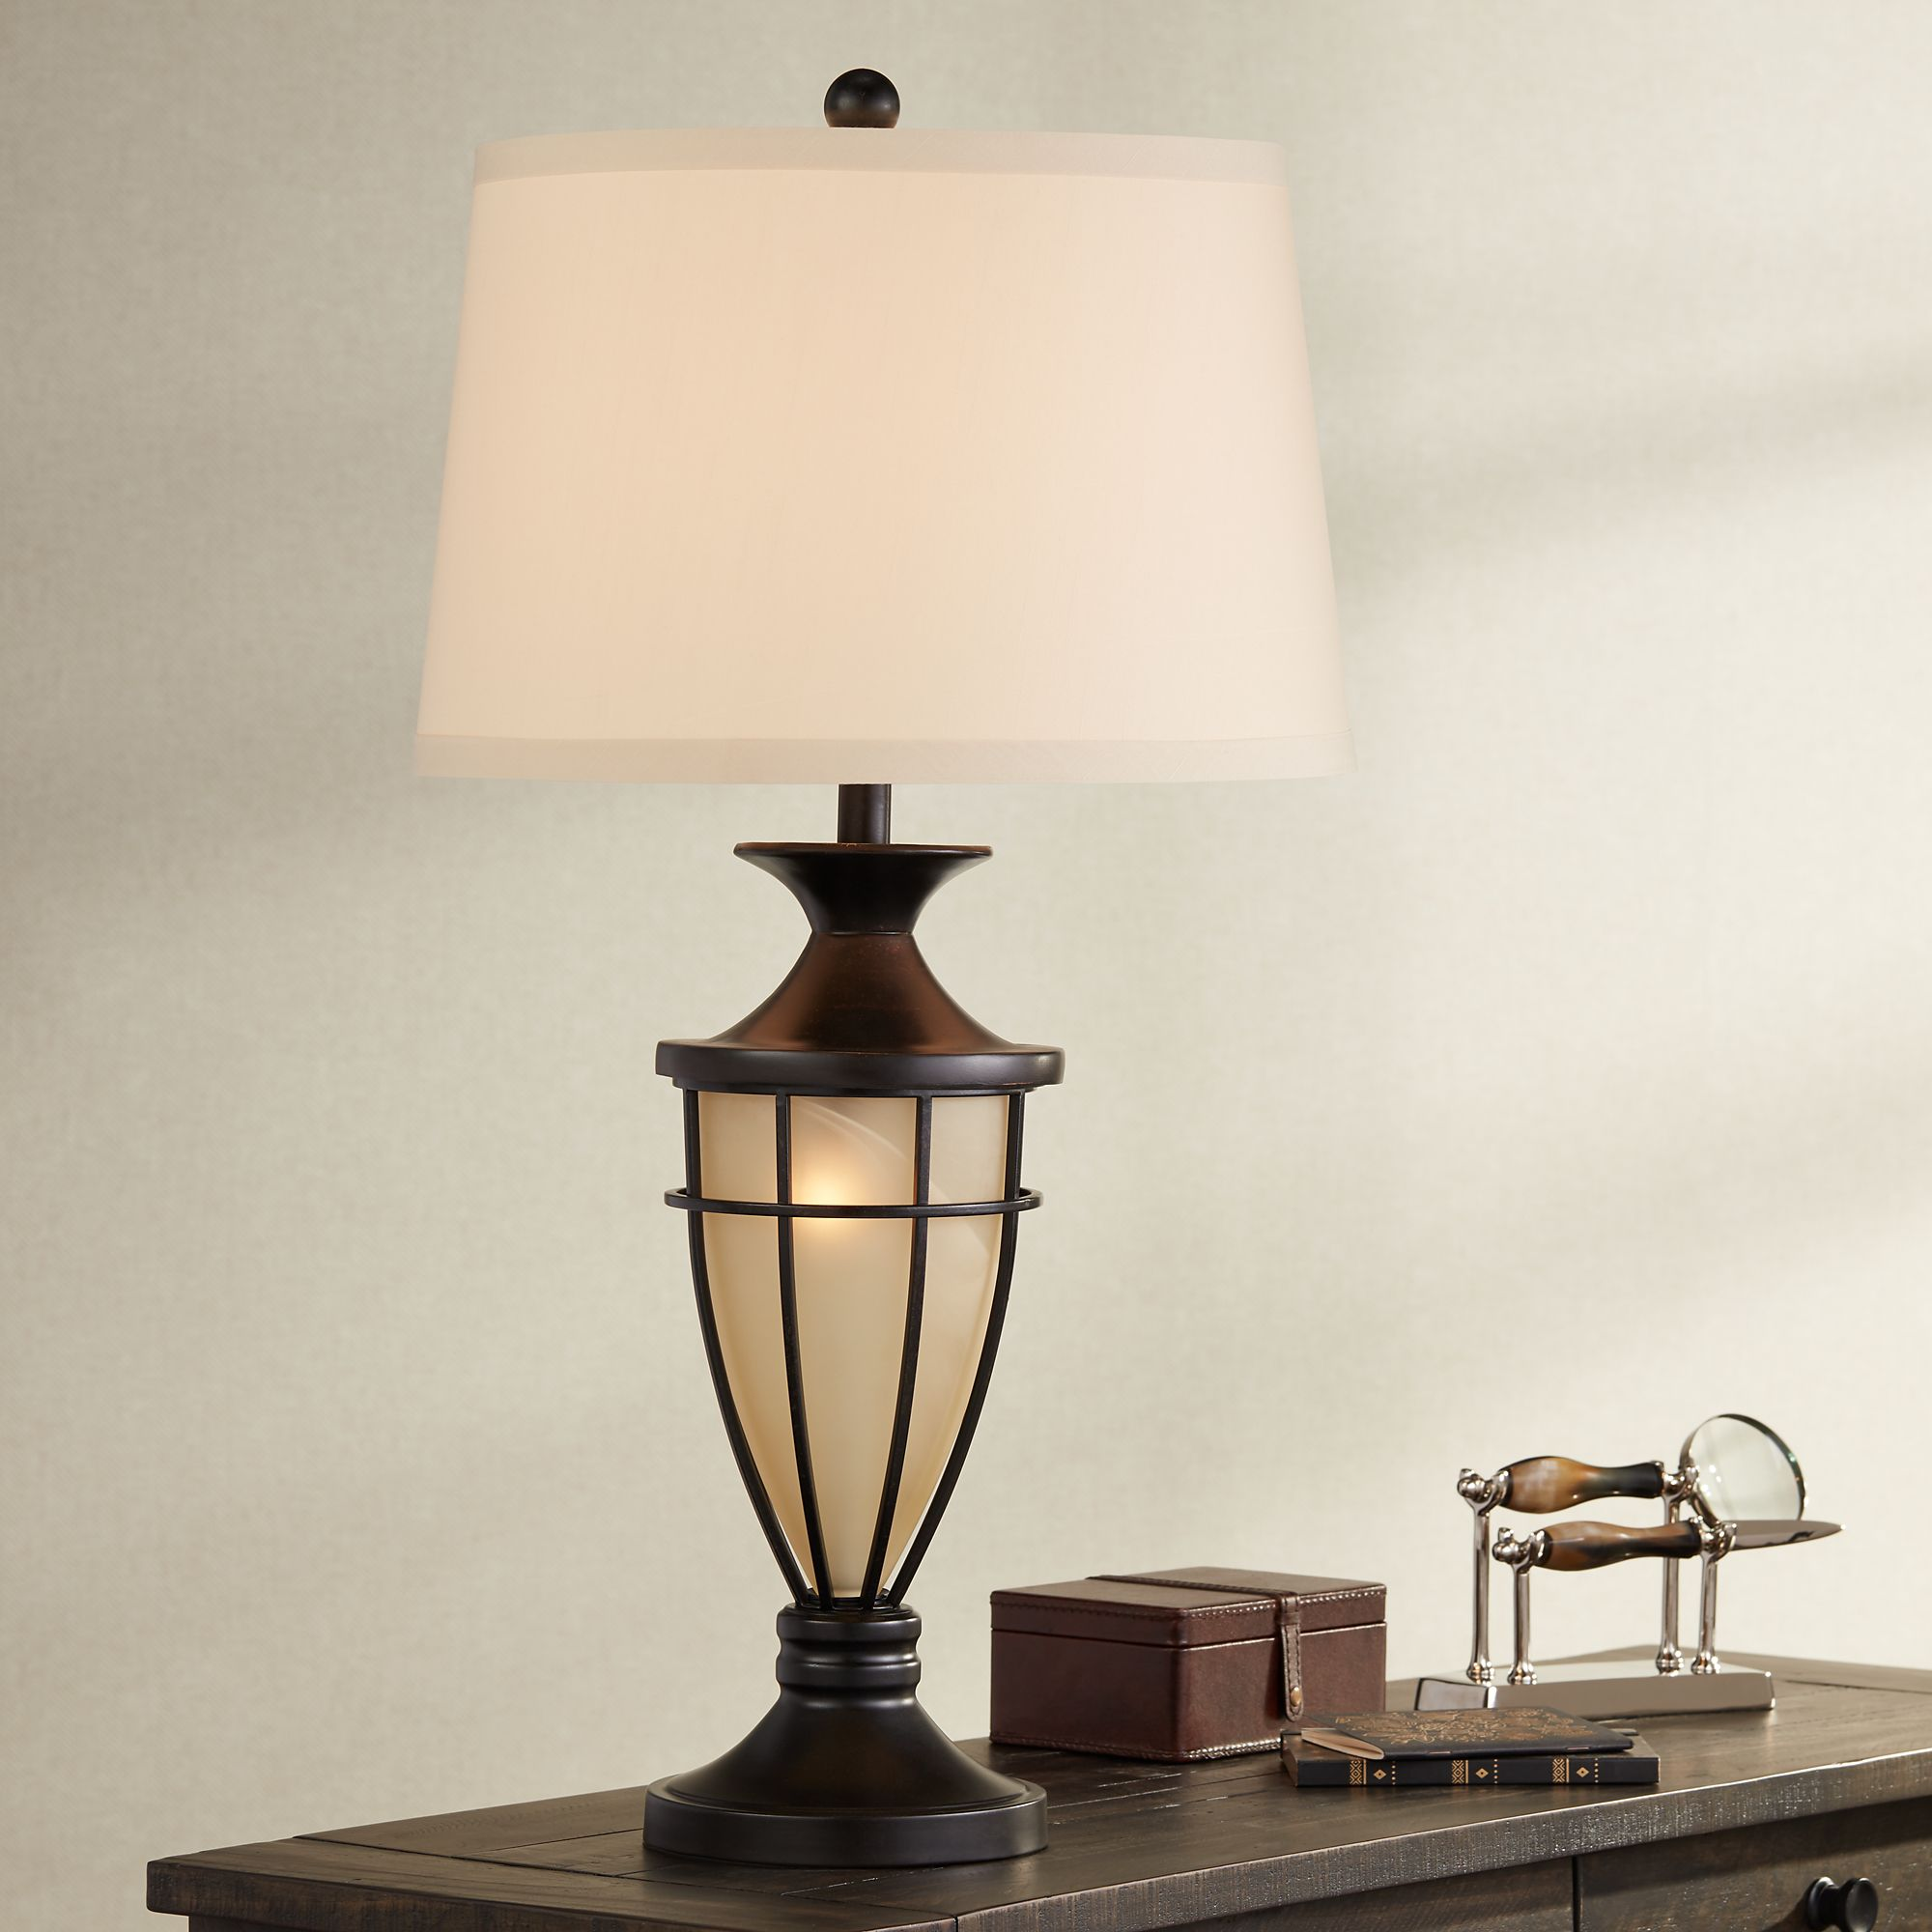 Mission Cage Night Light Urn Table Lamp By John Timberland by John Timberland